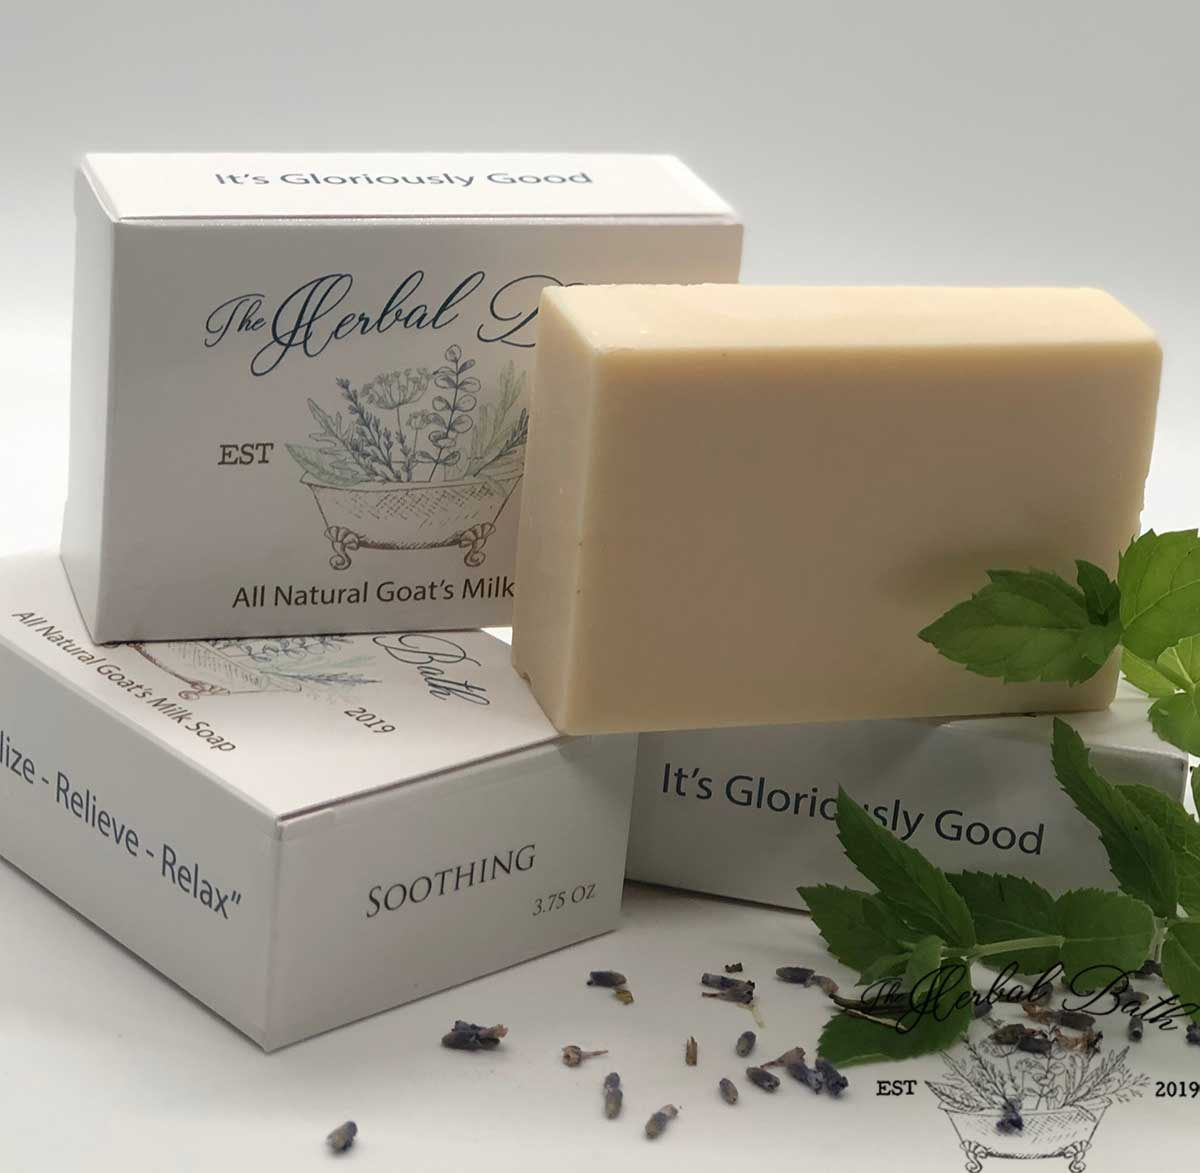 Soothing Signature Blend-Goat's milk soap